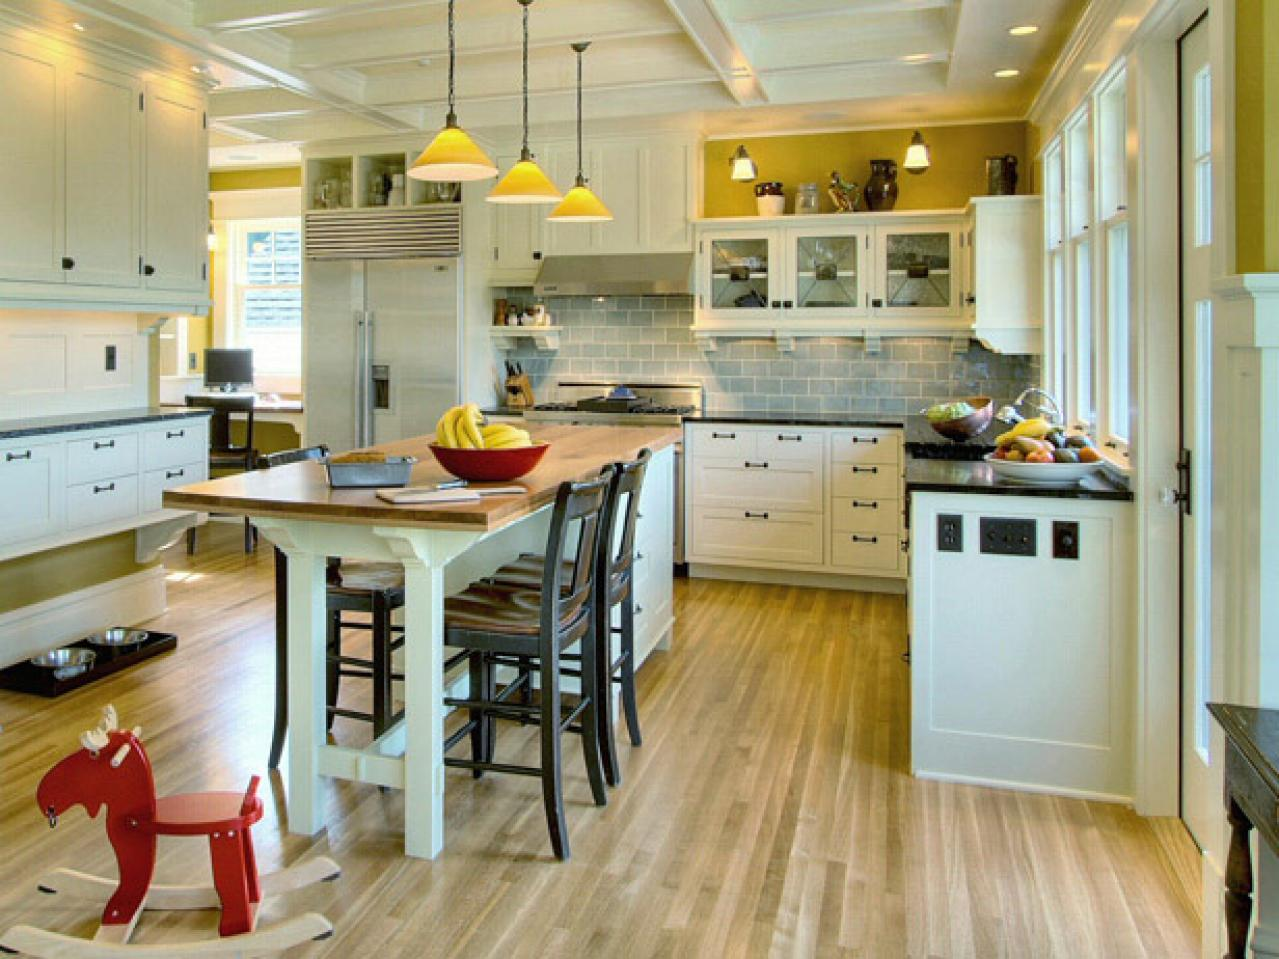 10 kitchen islands kitchen ideas design with cabinets islands backsplashes hgtv - Ideas for kitchen islands ...